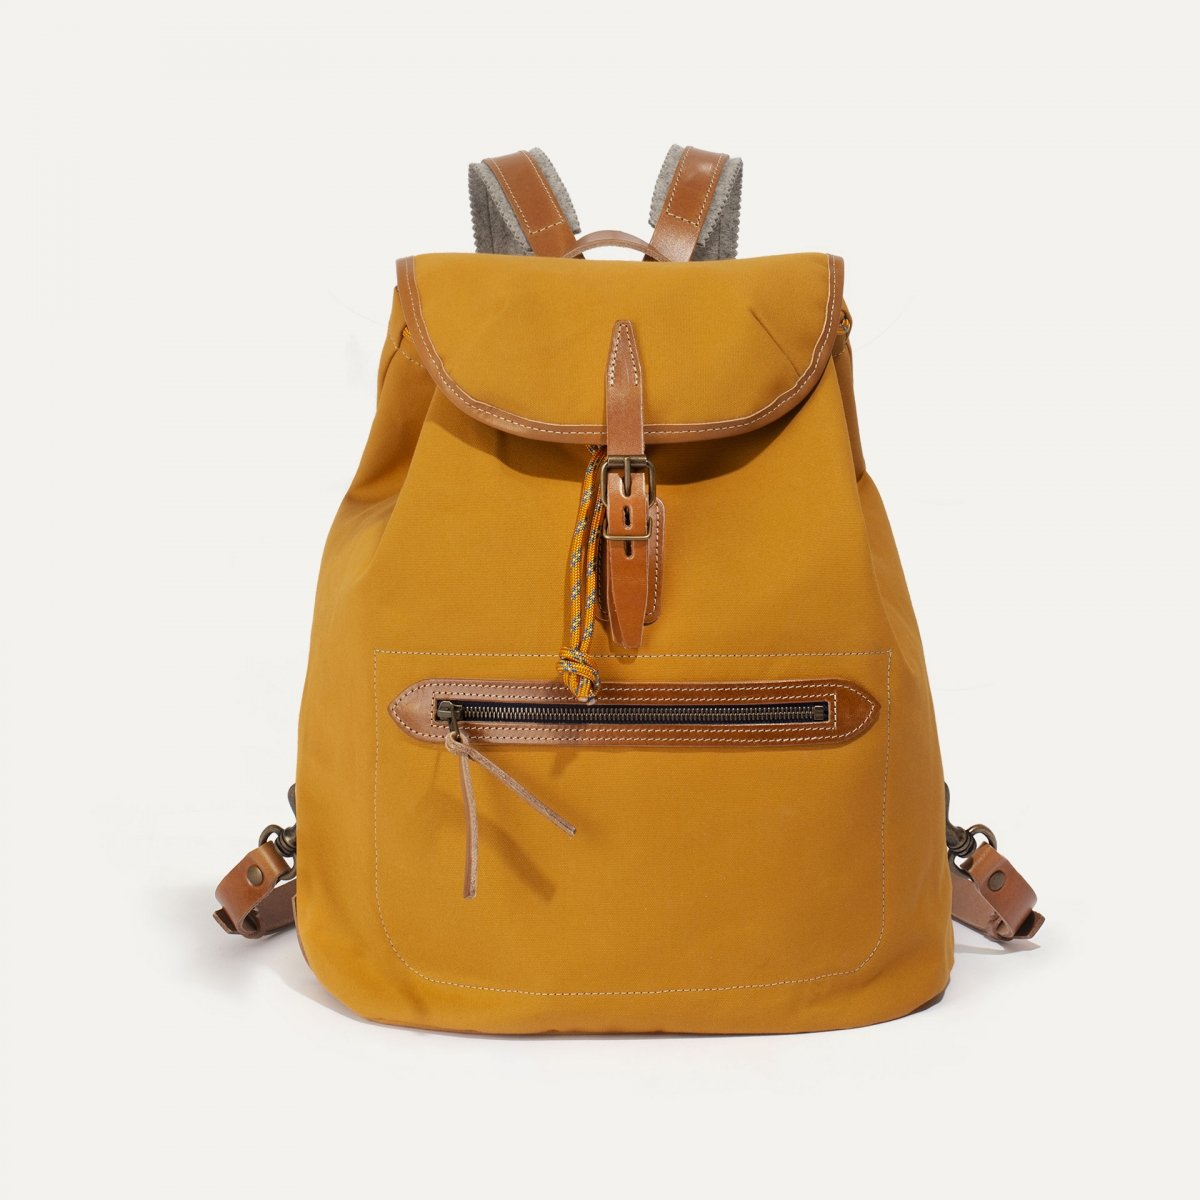 Camp backpack - Yellow ochre (image n°1)